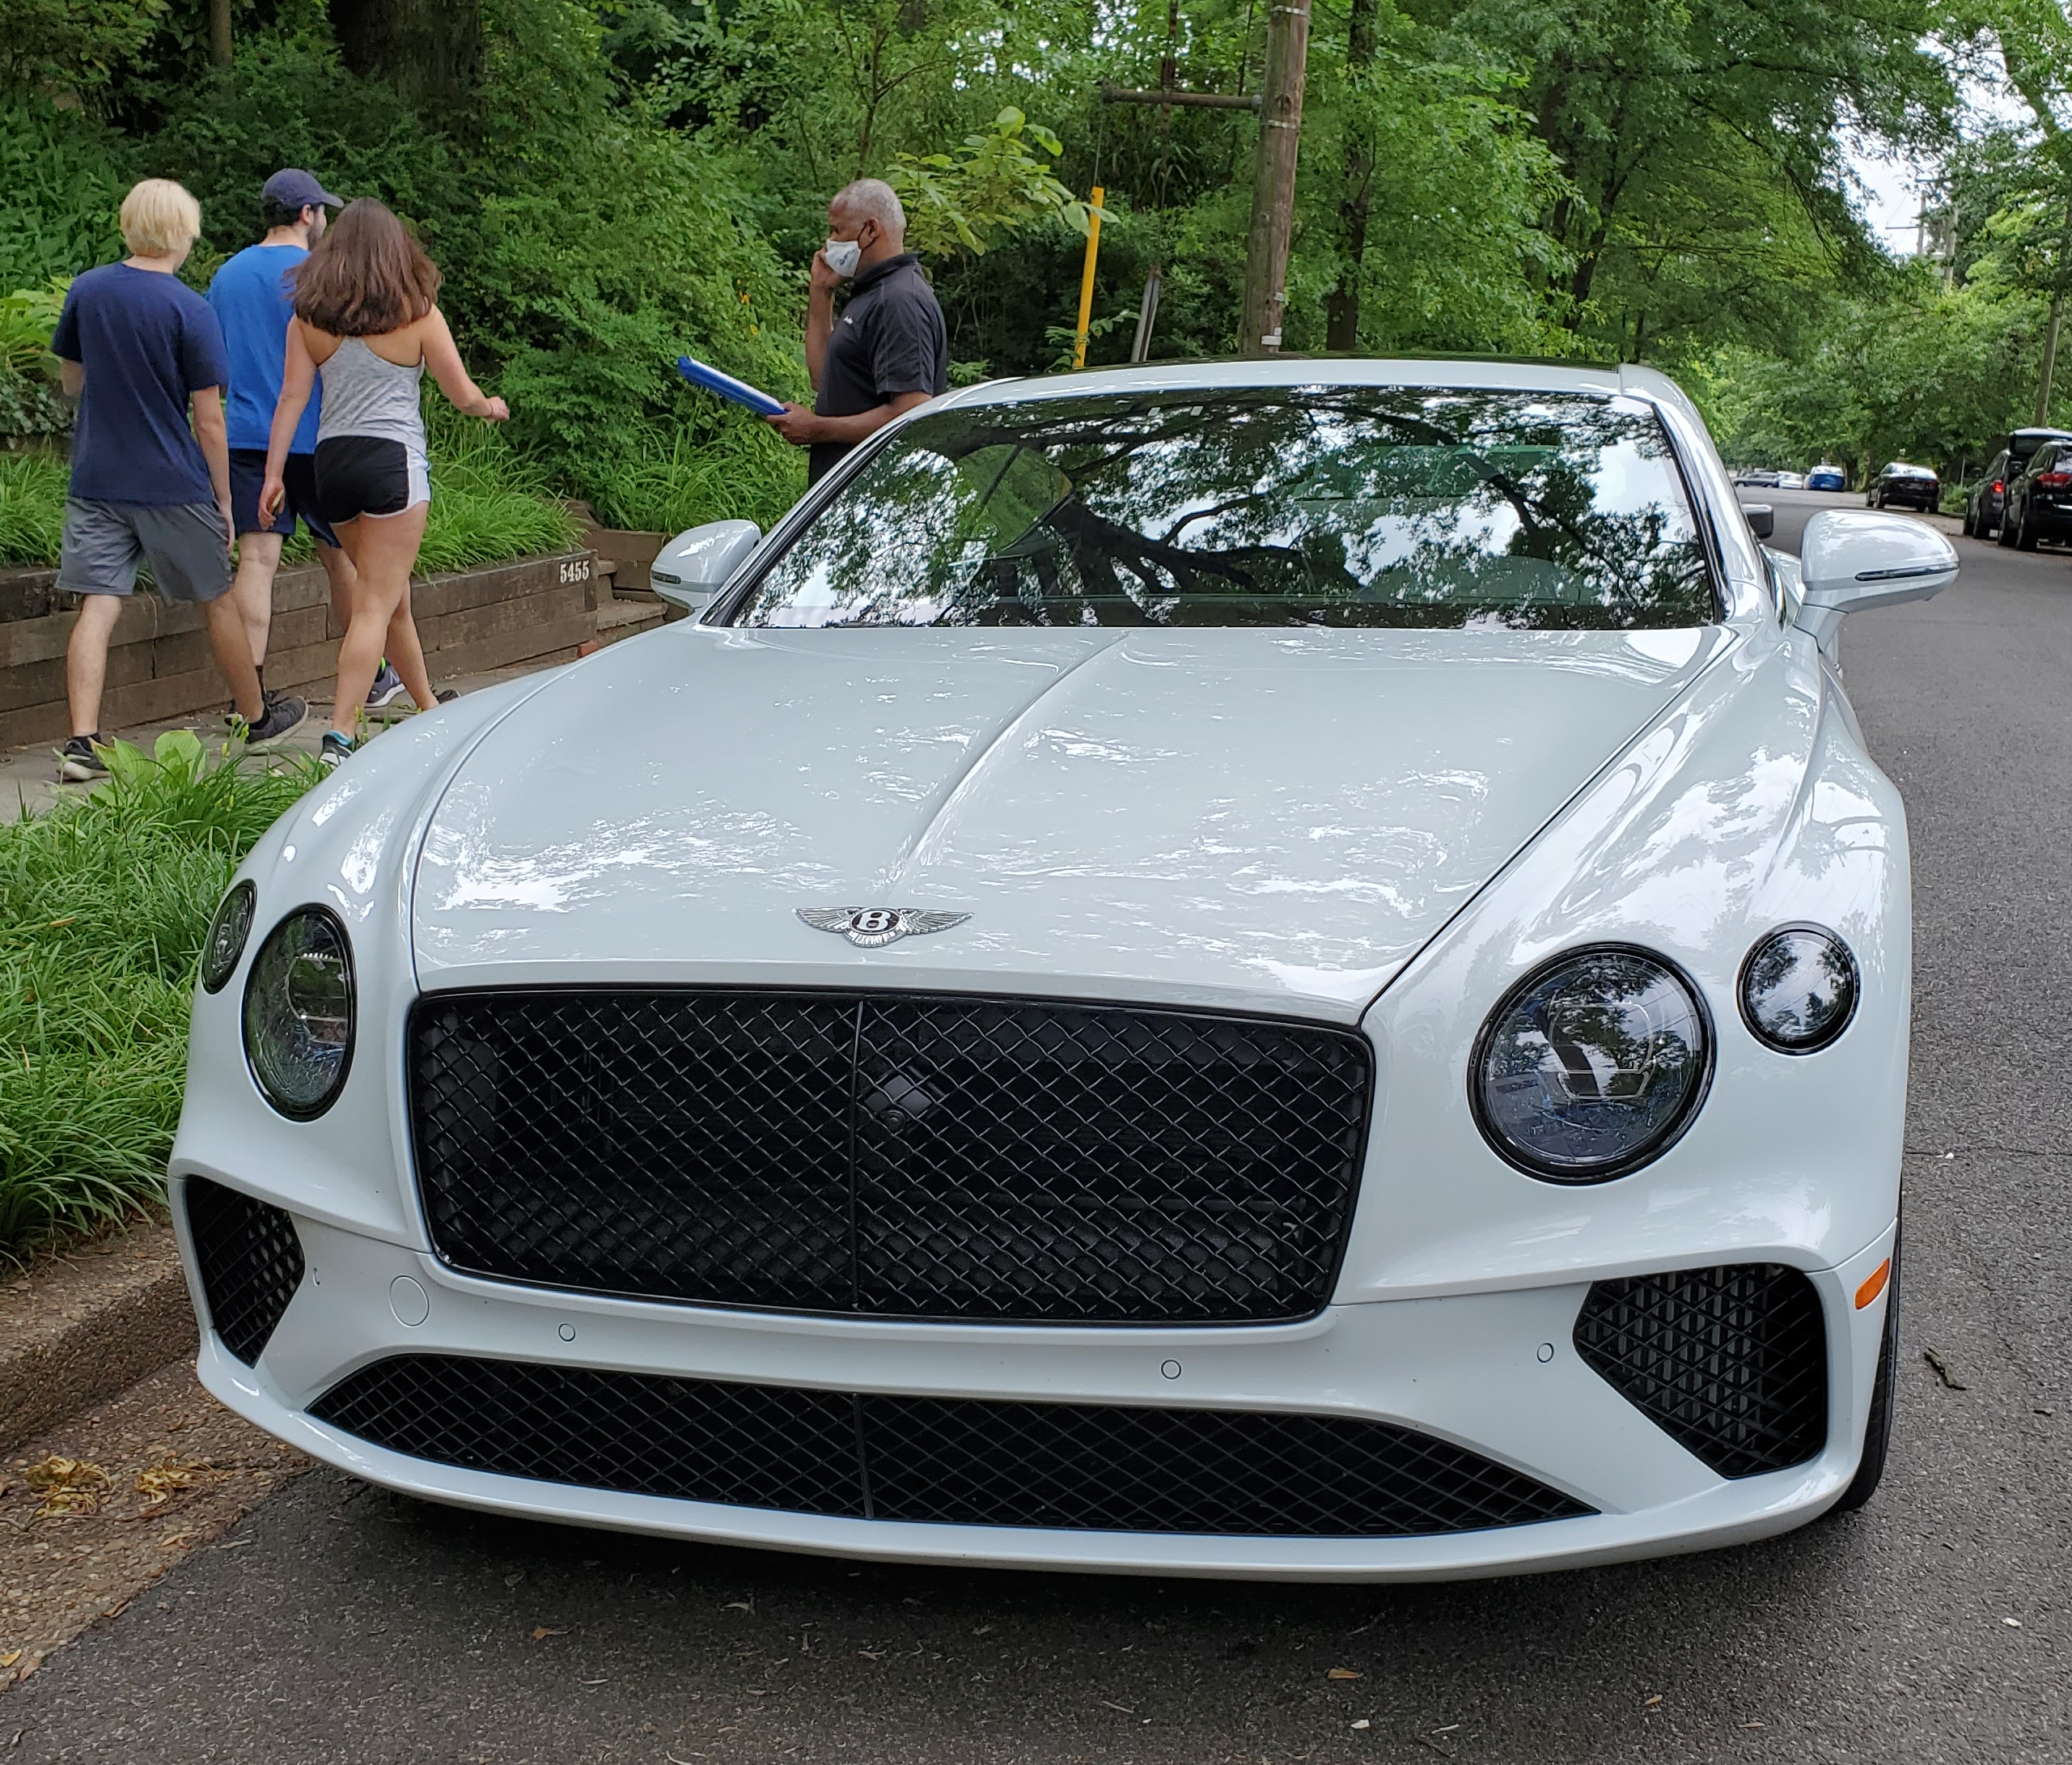 White Bentley Continental GT V8 with people beside it.